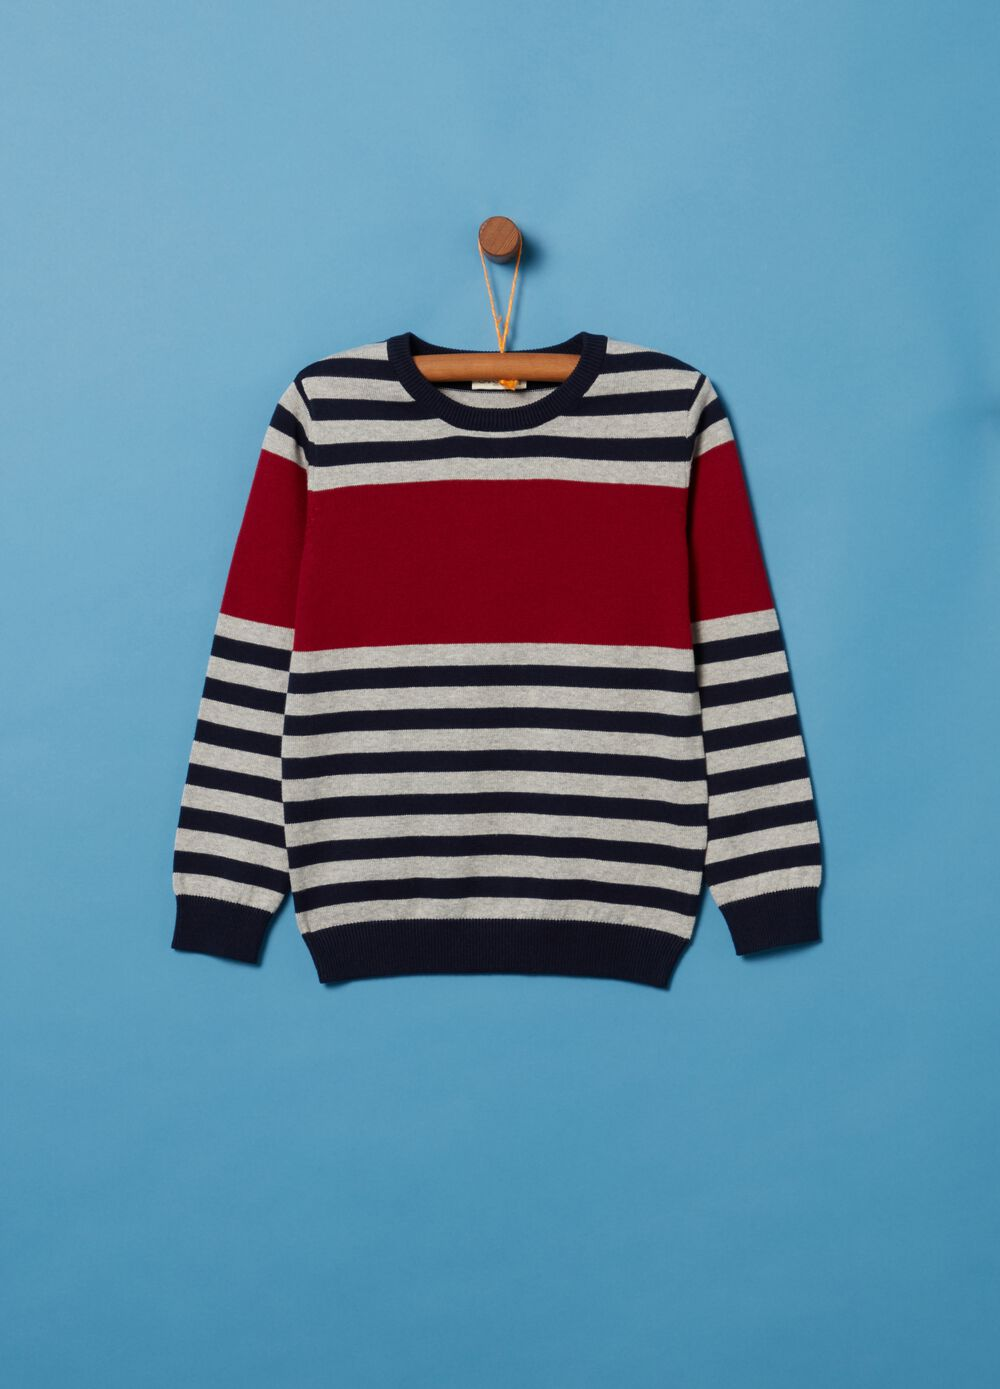 100% cotton knitted pullover with stripes